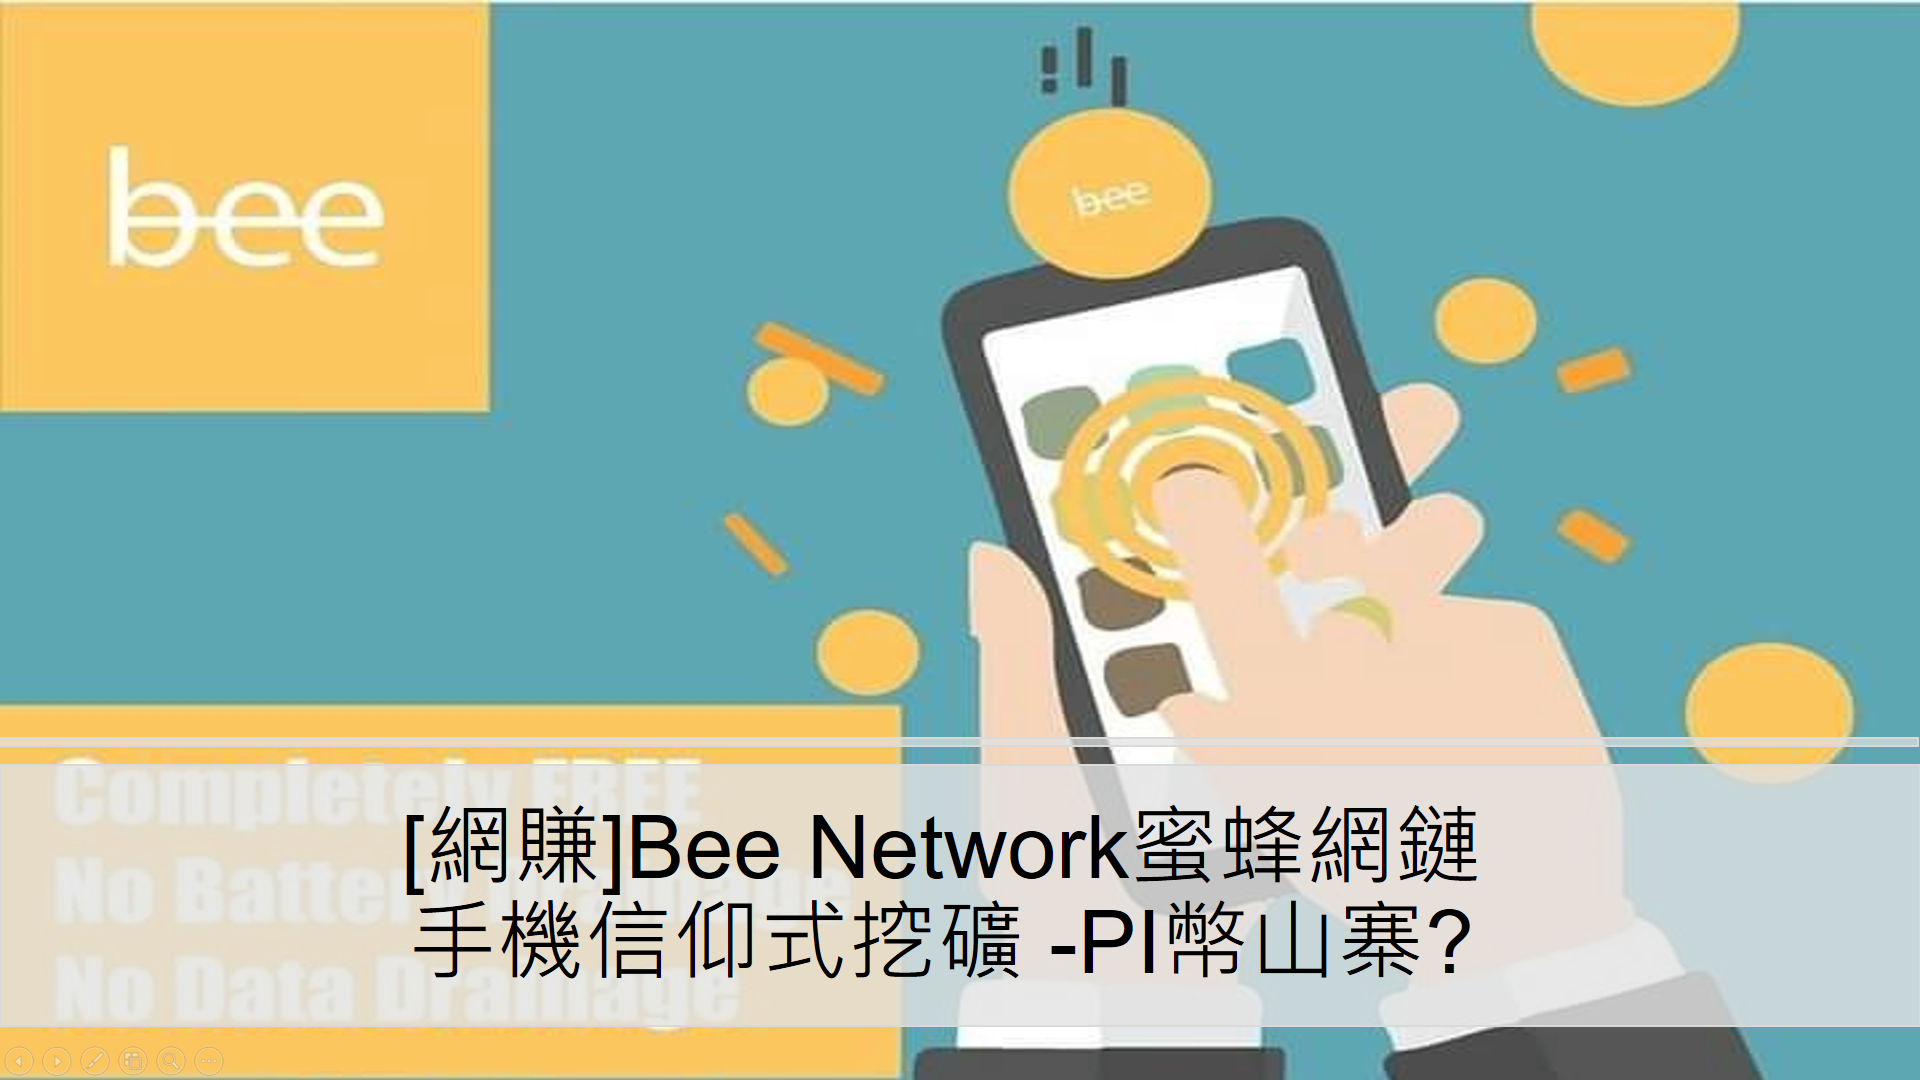 Bee Network introduce